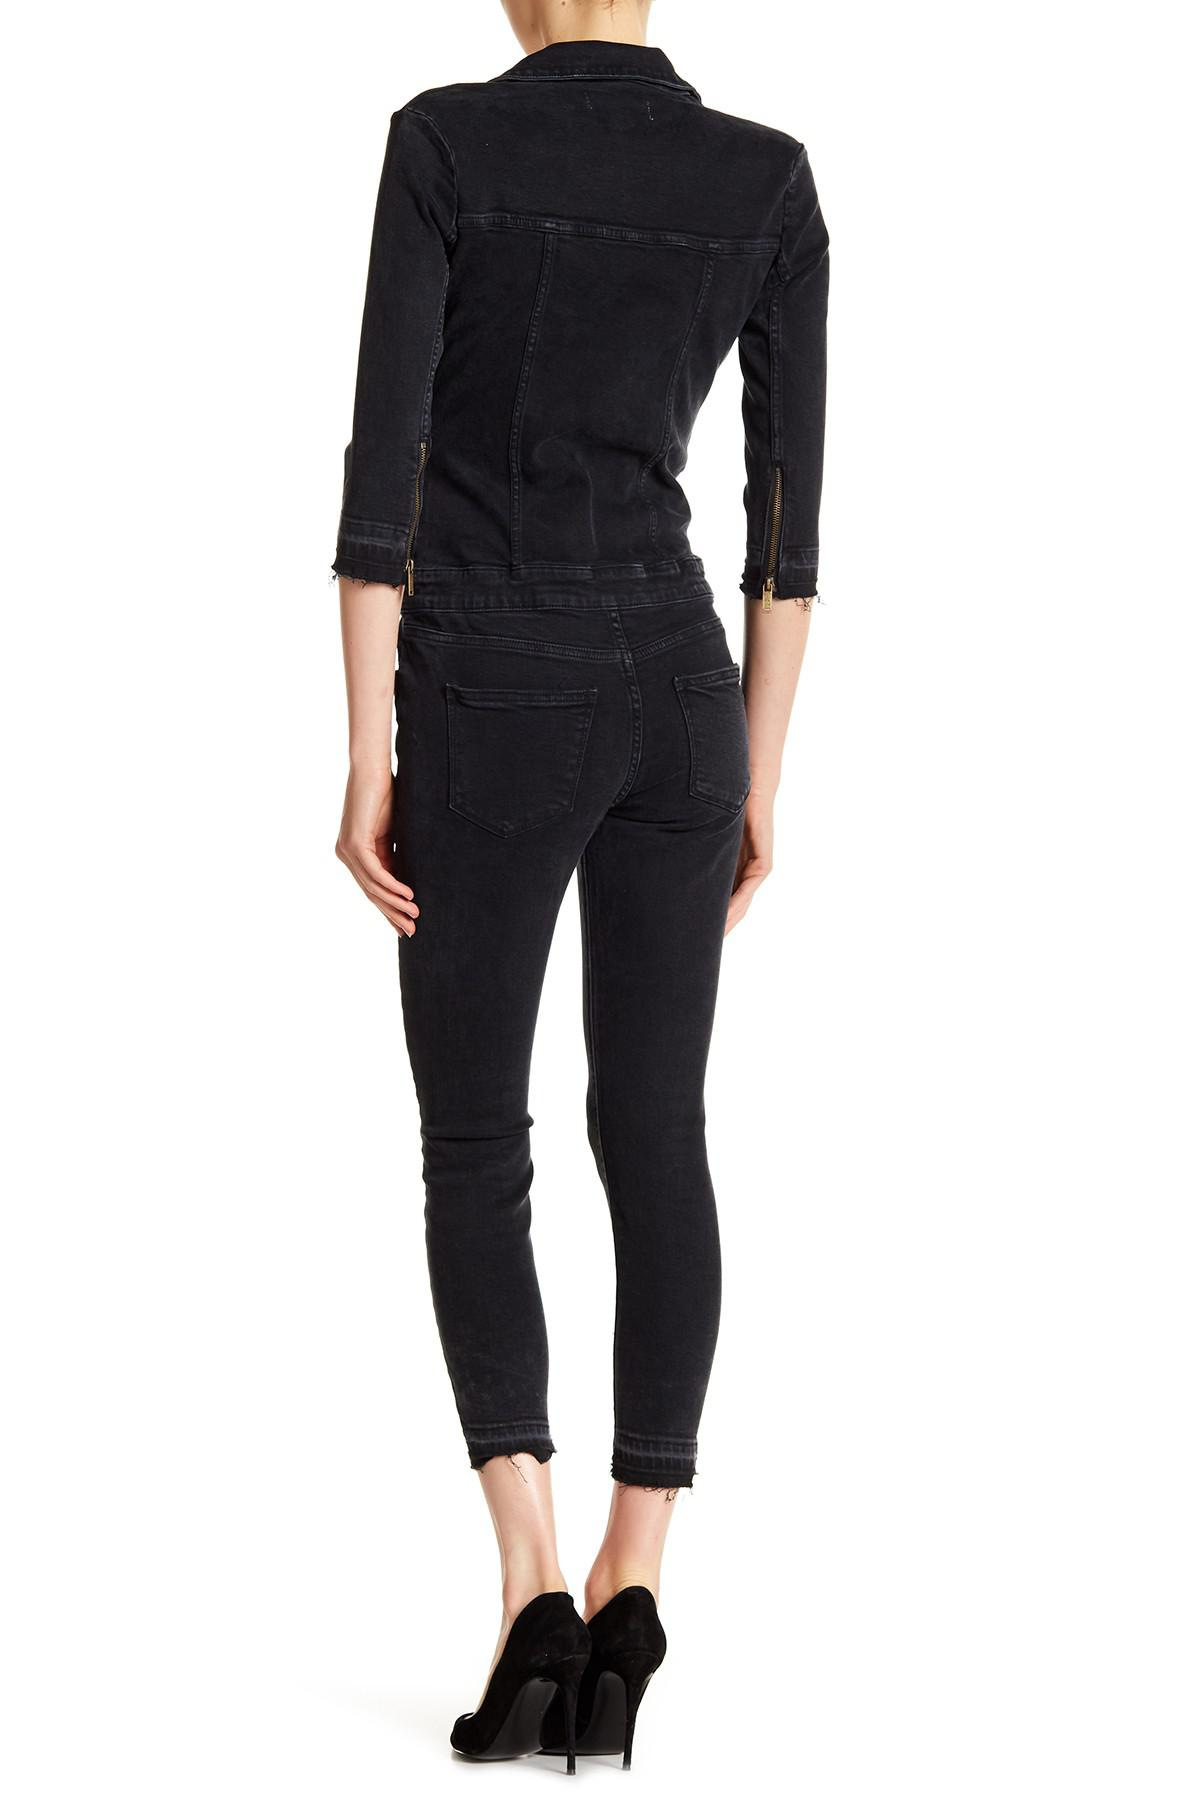 2a93fe301b46 Gallery. Previously sold at  Nordstrom Rack · Women s Denim Jumpsuits ...